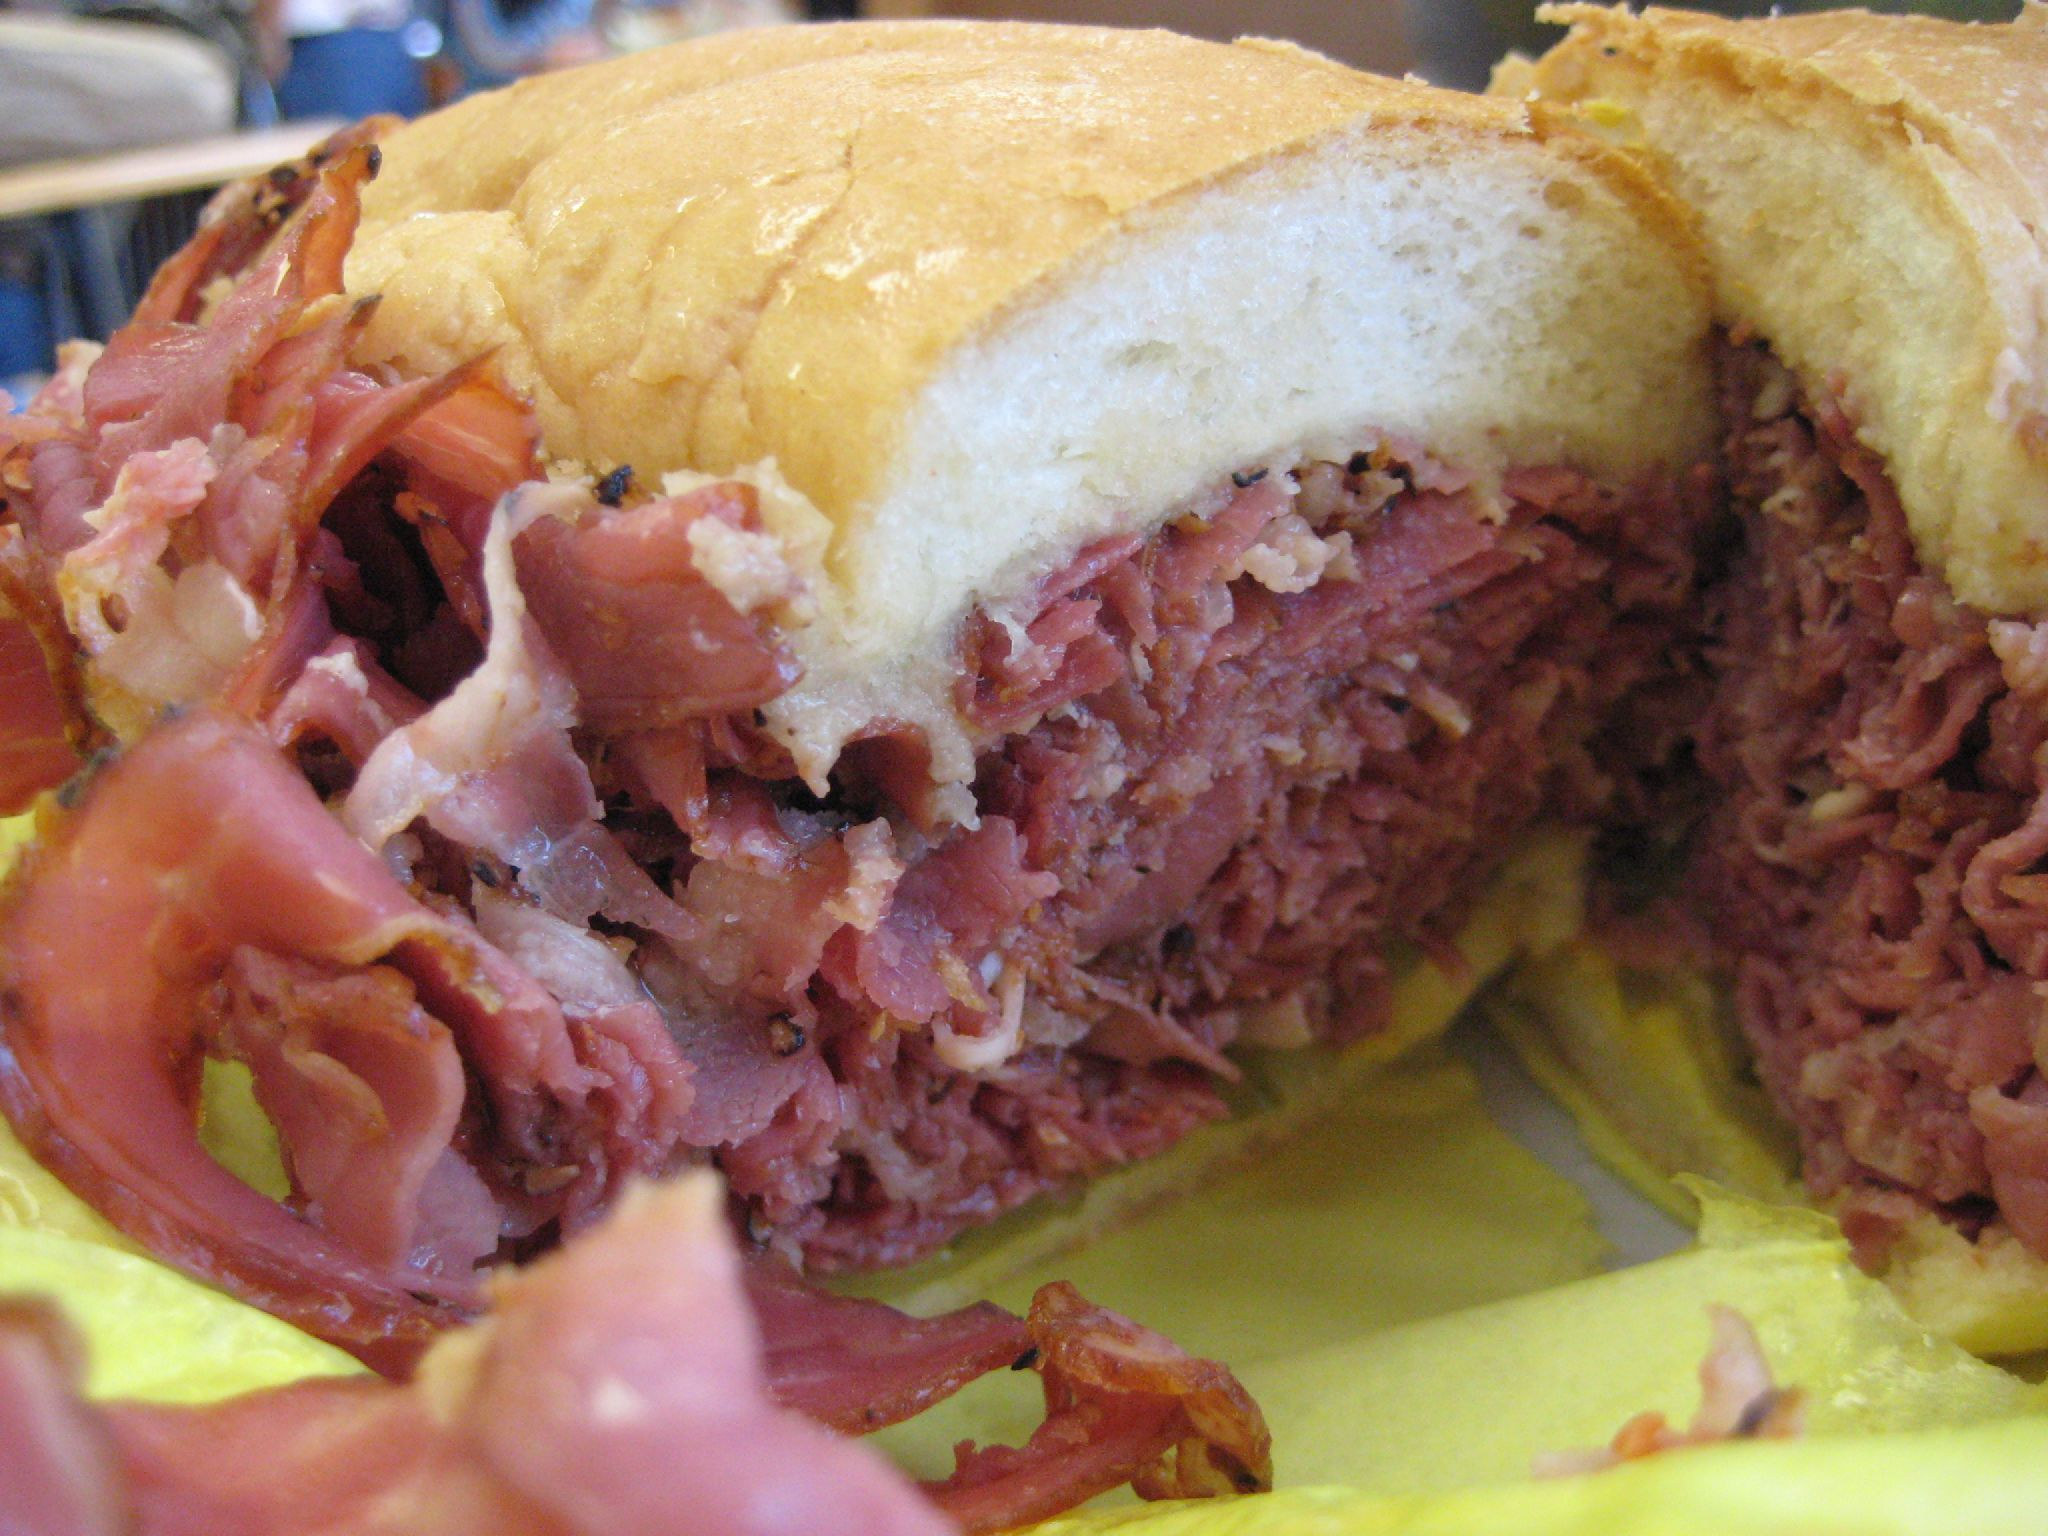 File:Pastrami from The Hat.jpg - Wikipedia, the free encyclopedia